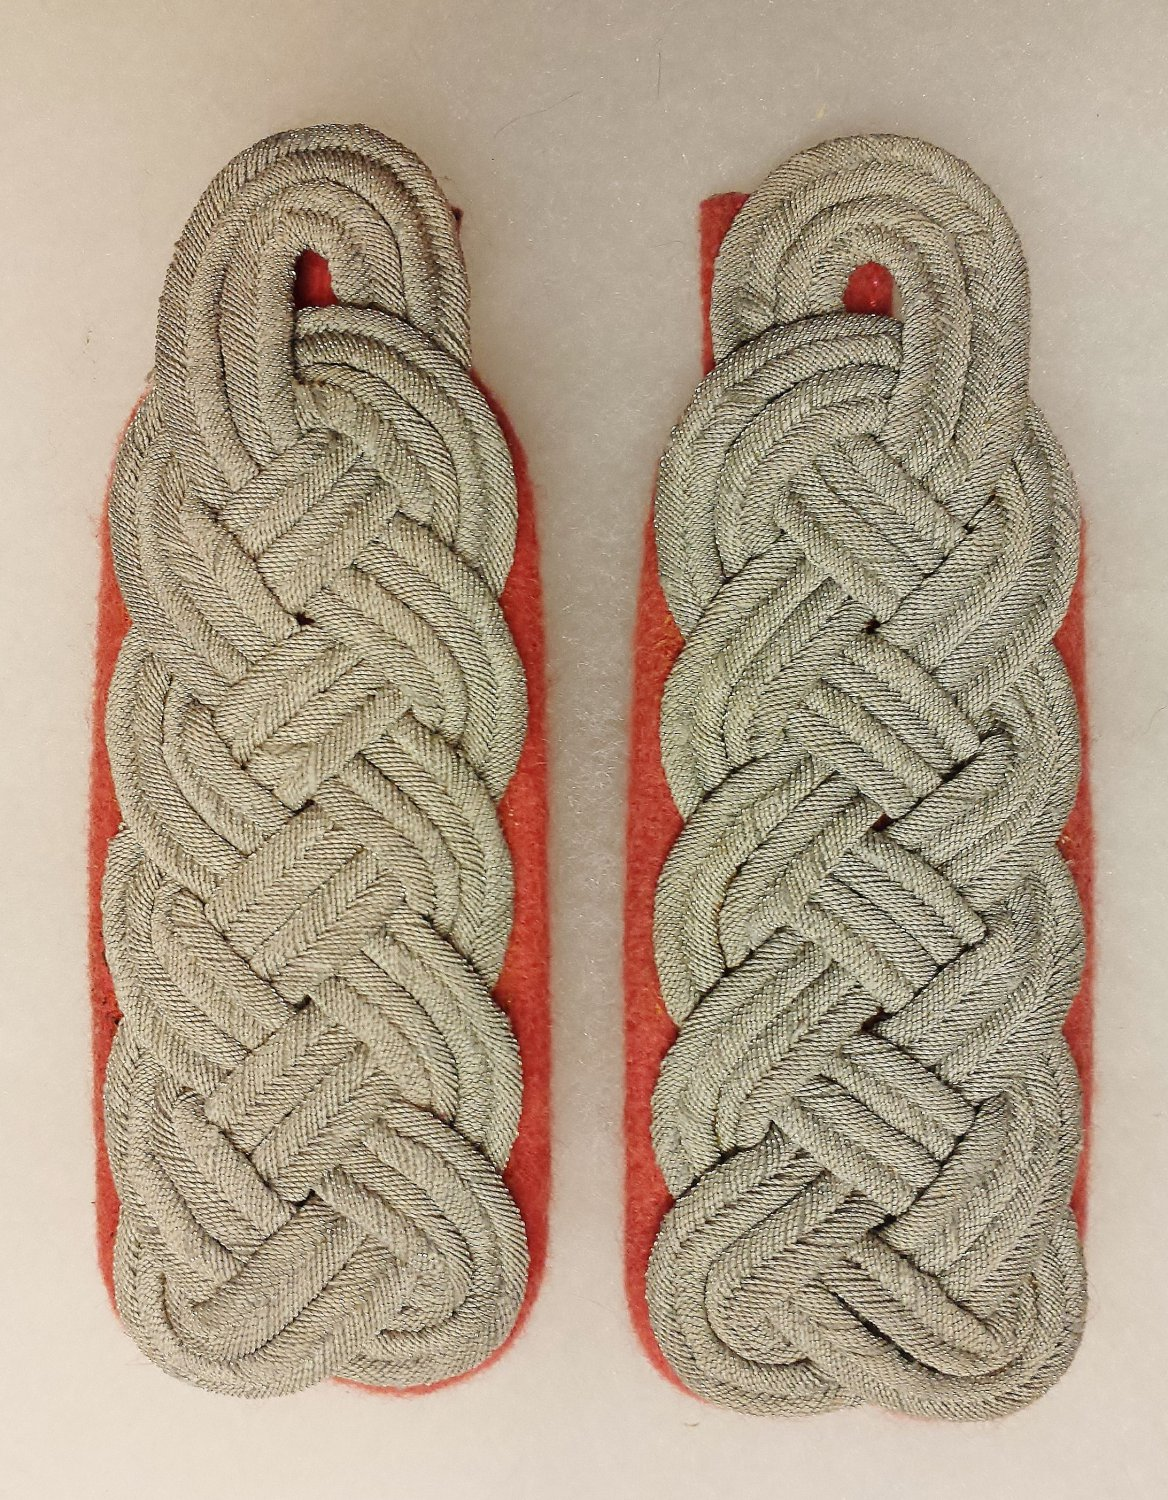 WWII GERMAN SS PANZER OFFICERS SHOULDER BOARDS